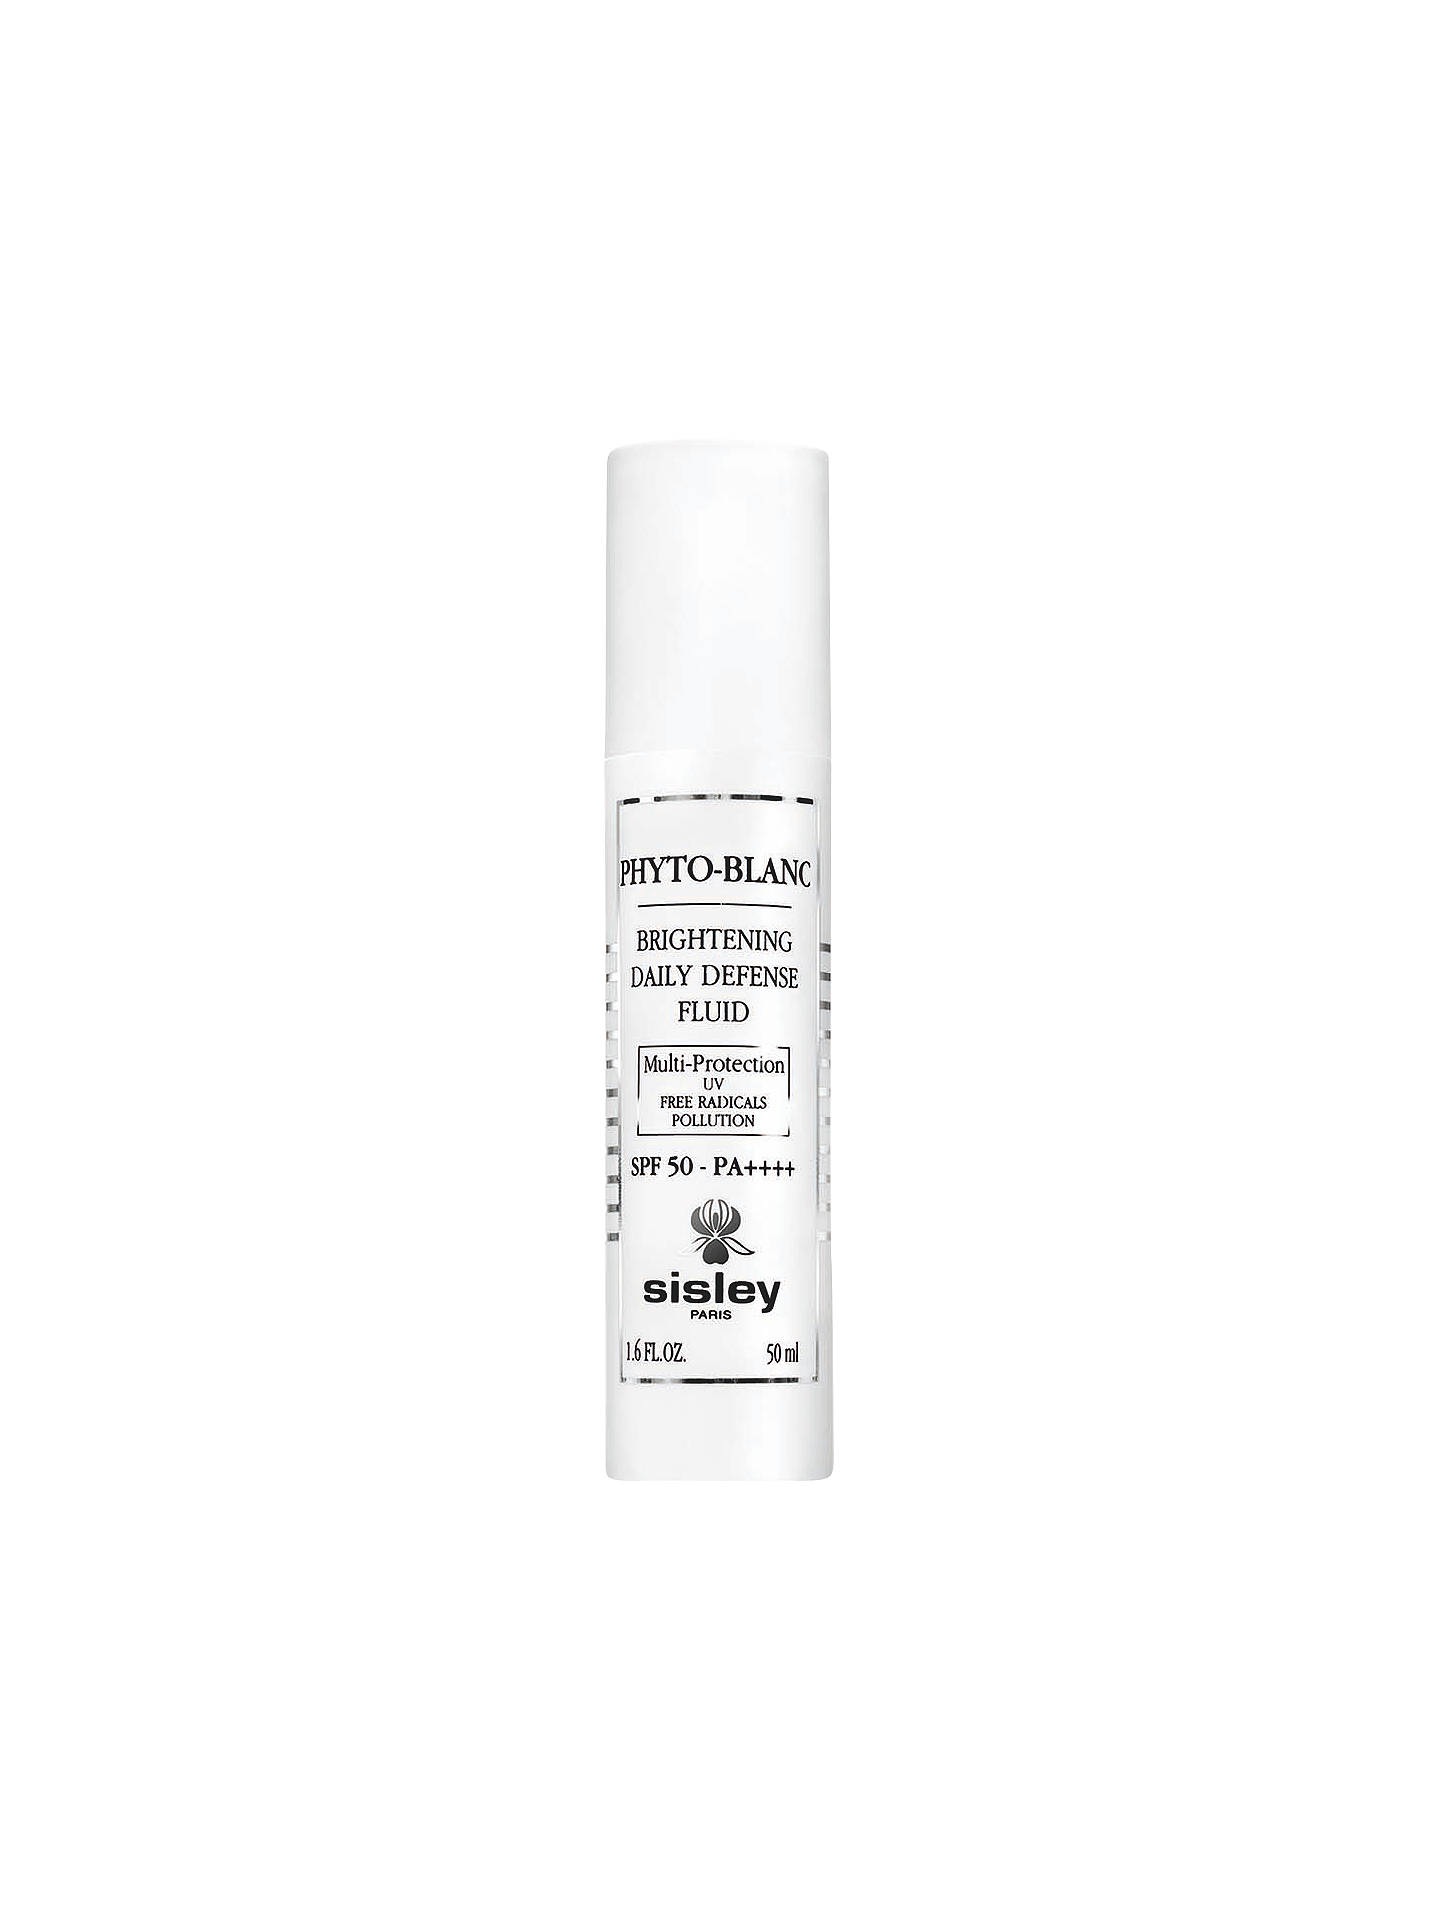 Buy Sisley Phyto-Blanc Brightening Daily Defence Fluid SPF 50, 50ml Online at johnlewis.com